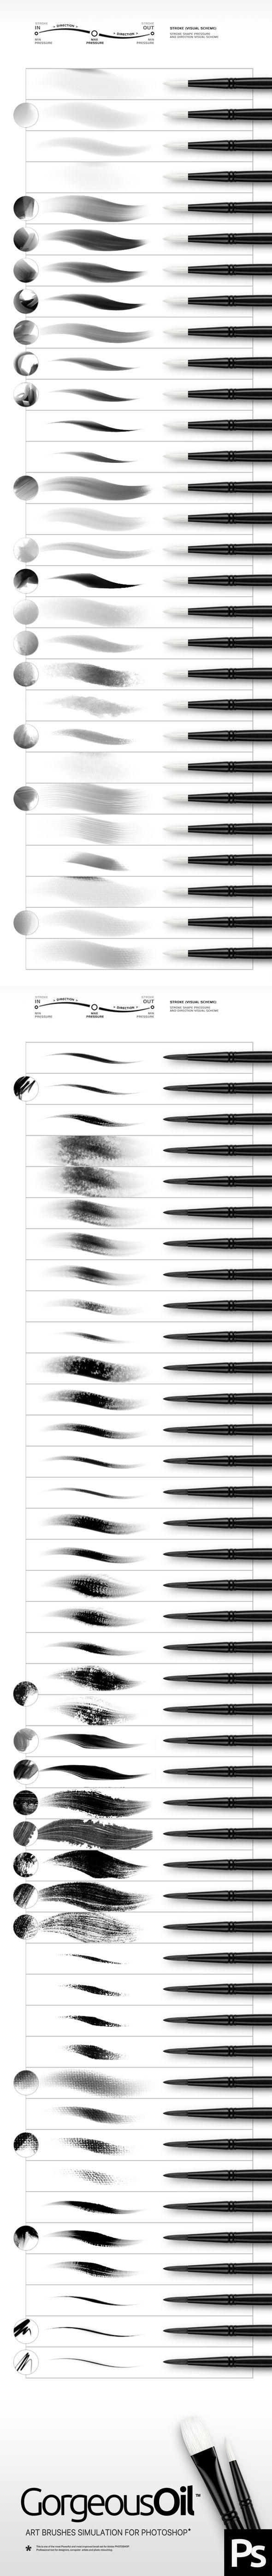 Oil Photoshop Brushes. Download here: http://graphicriver.net/item/oil-brushes/15815729?ref=ksioks